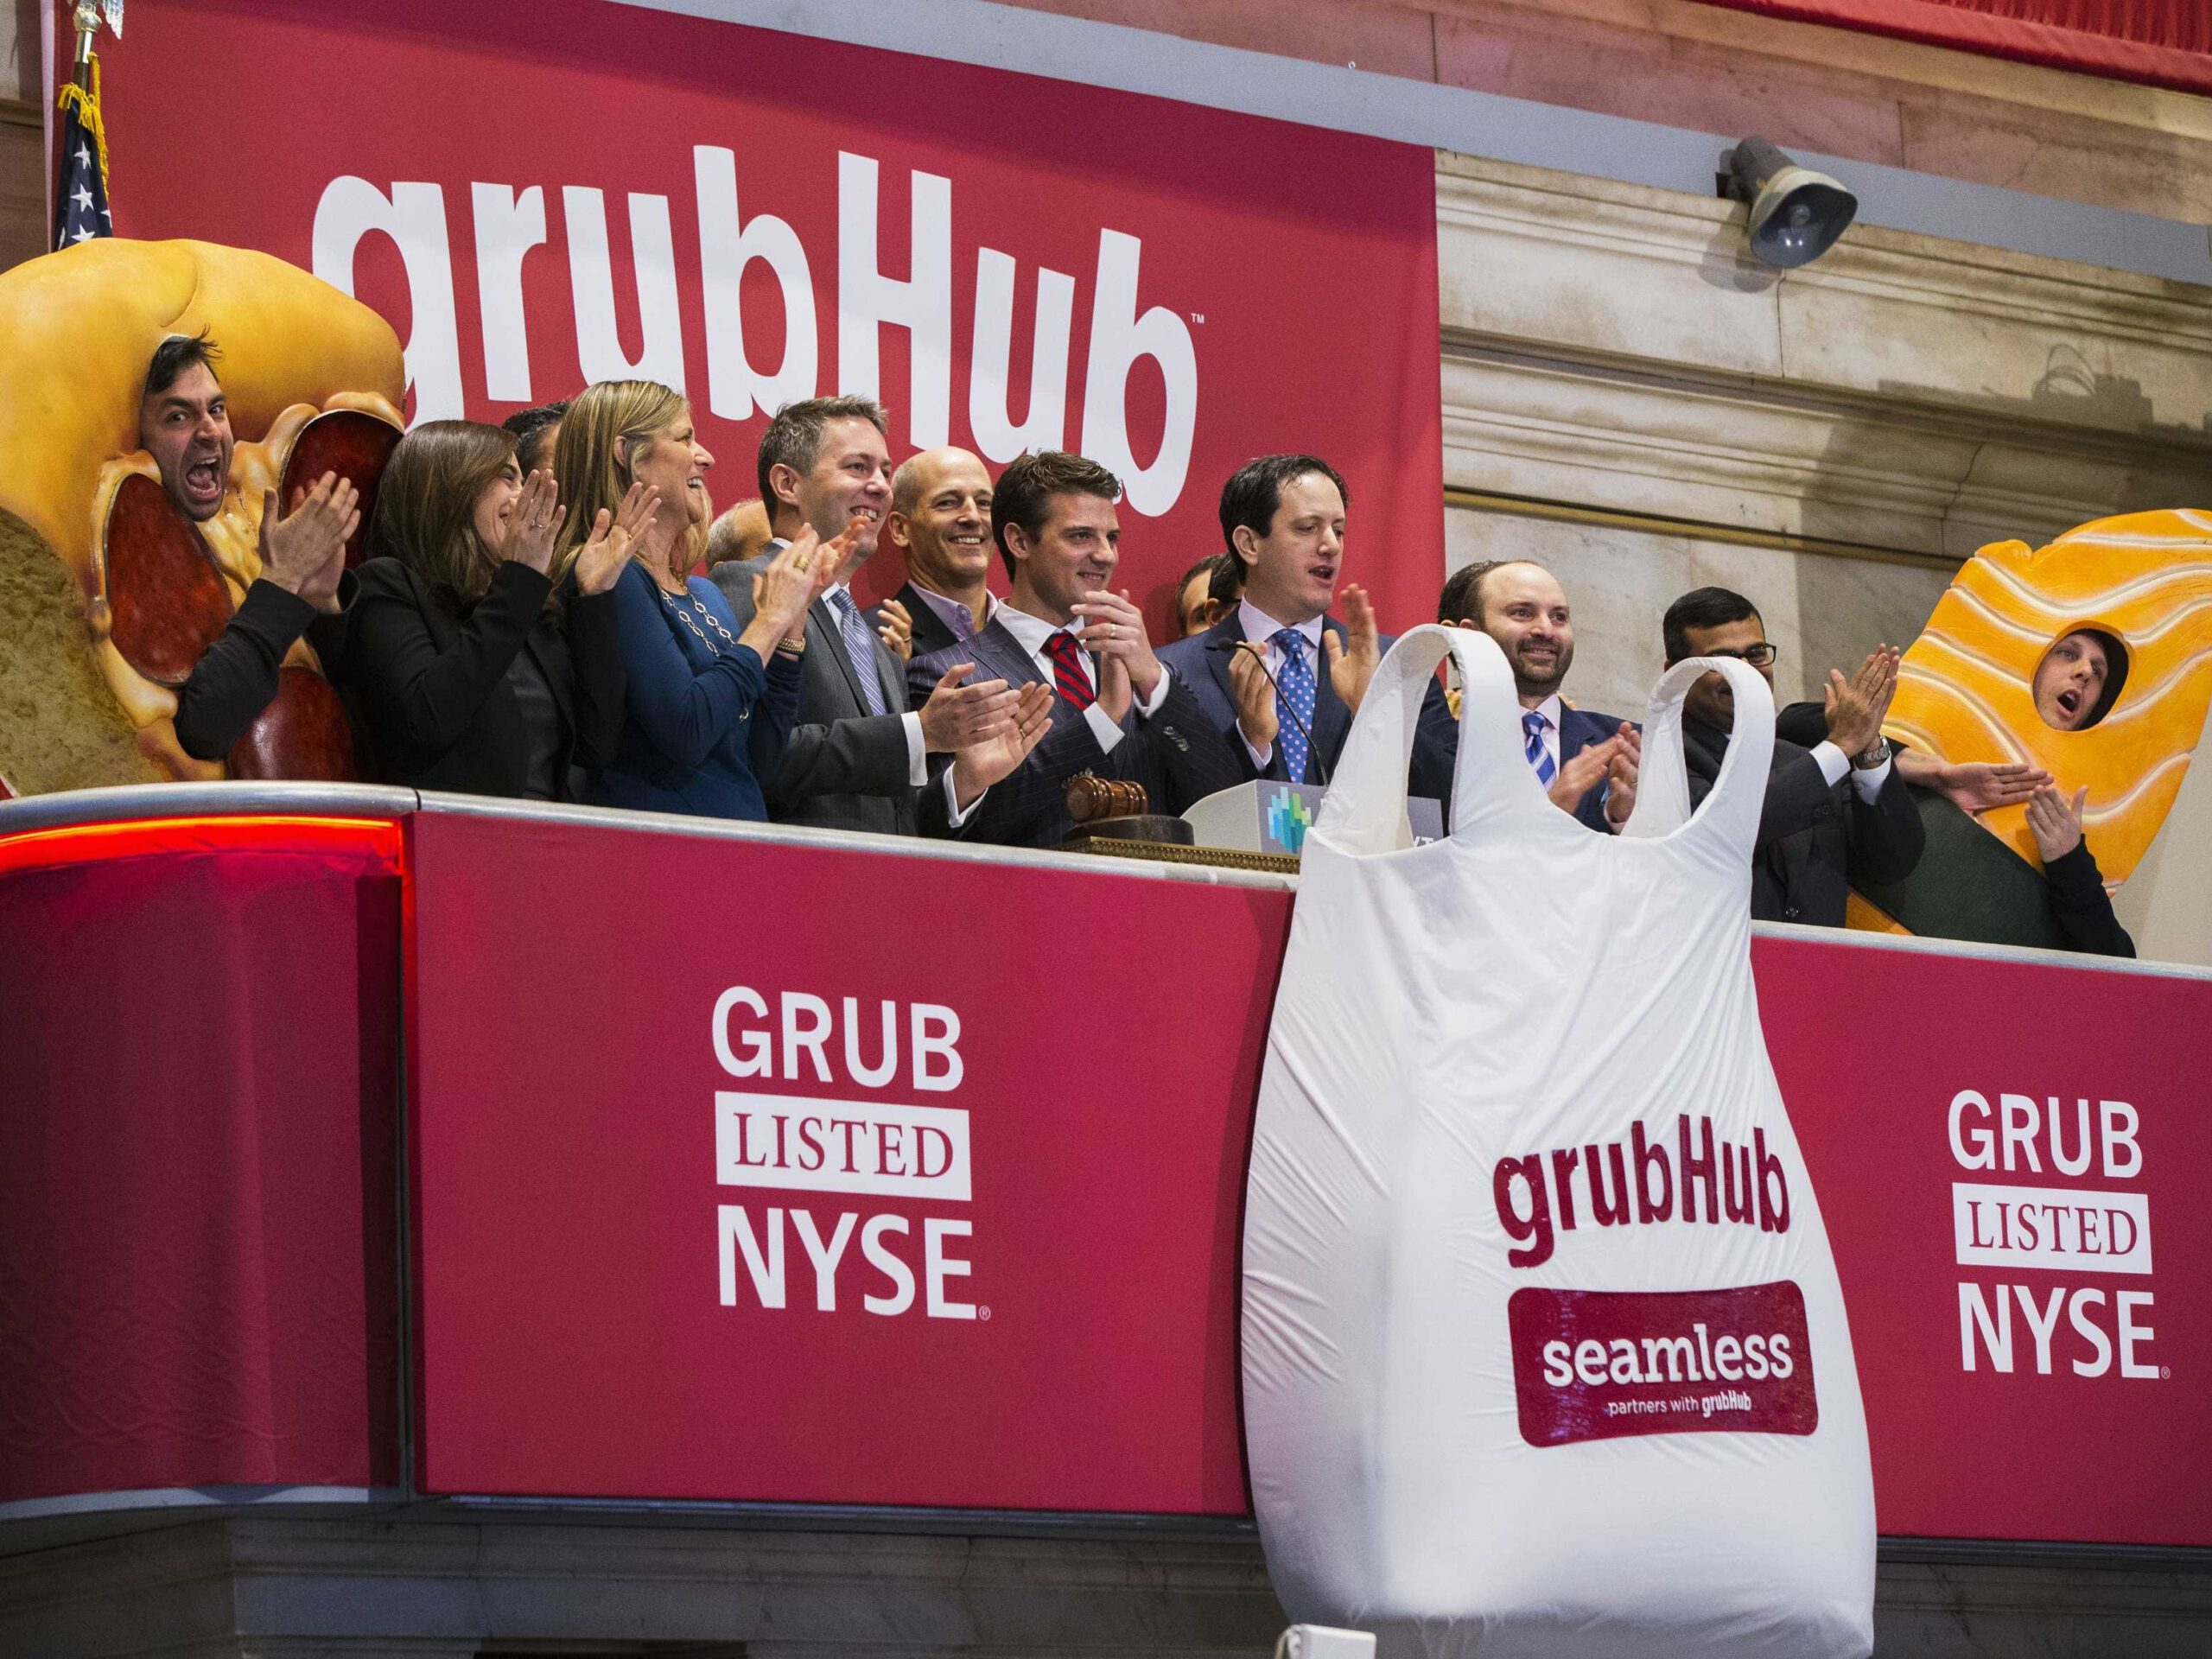 Grubhub is facing 14 lawsuits from angry investors who say it misled them about its $7.3 billion takeover by Just Eat Takeaway